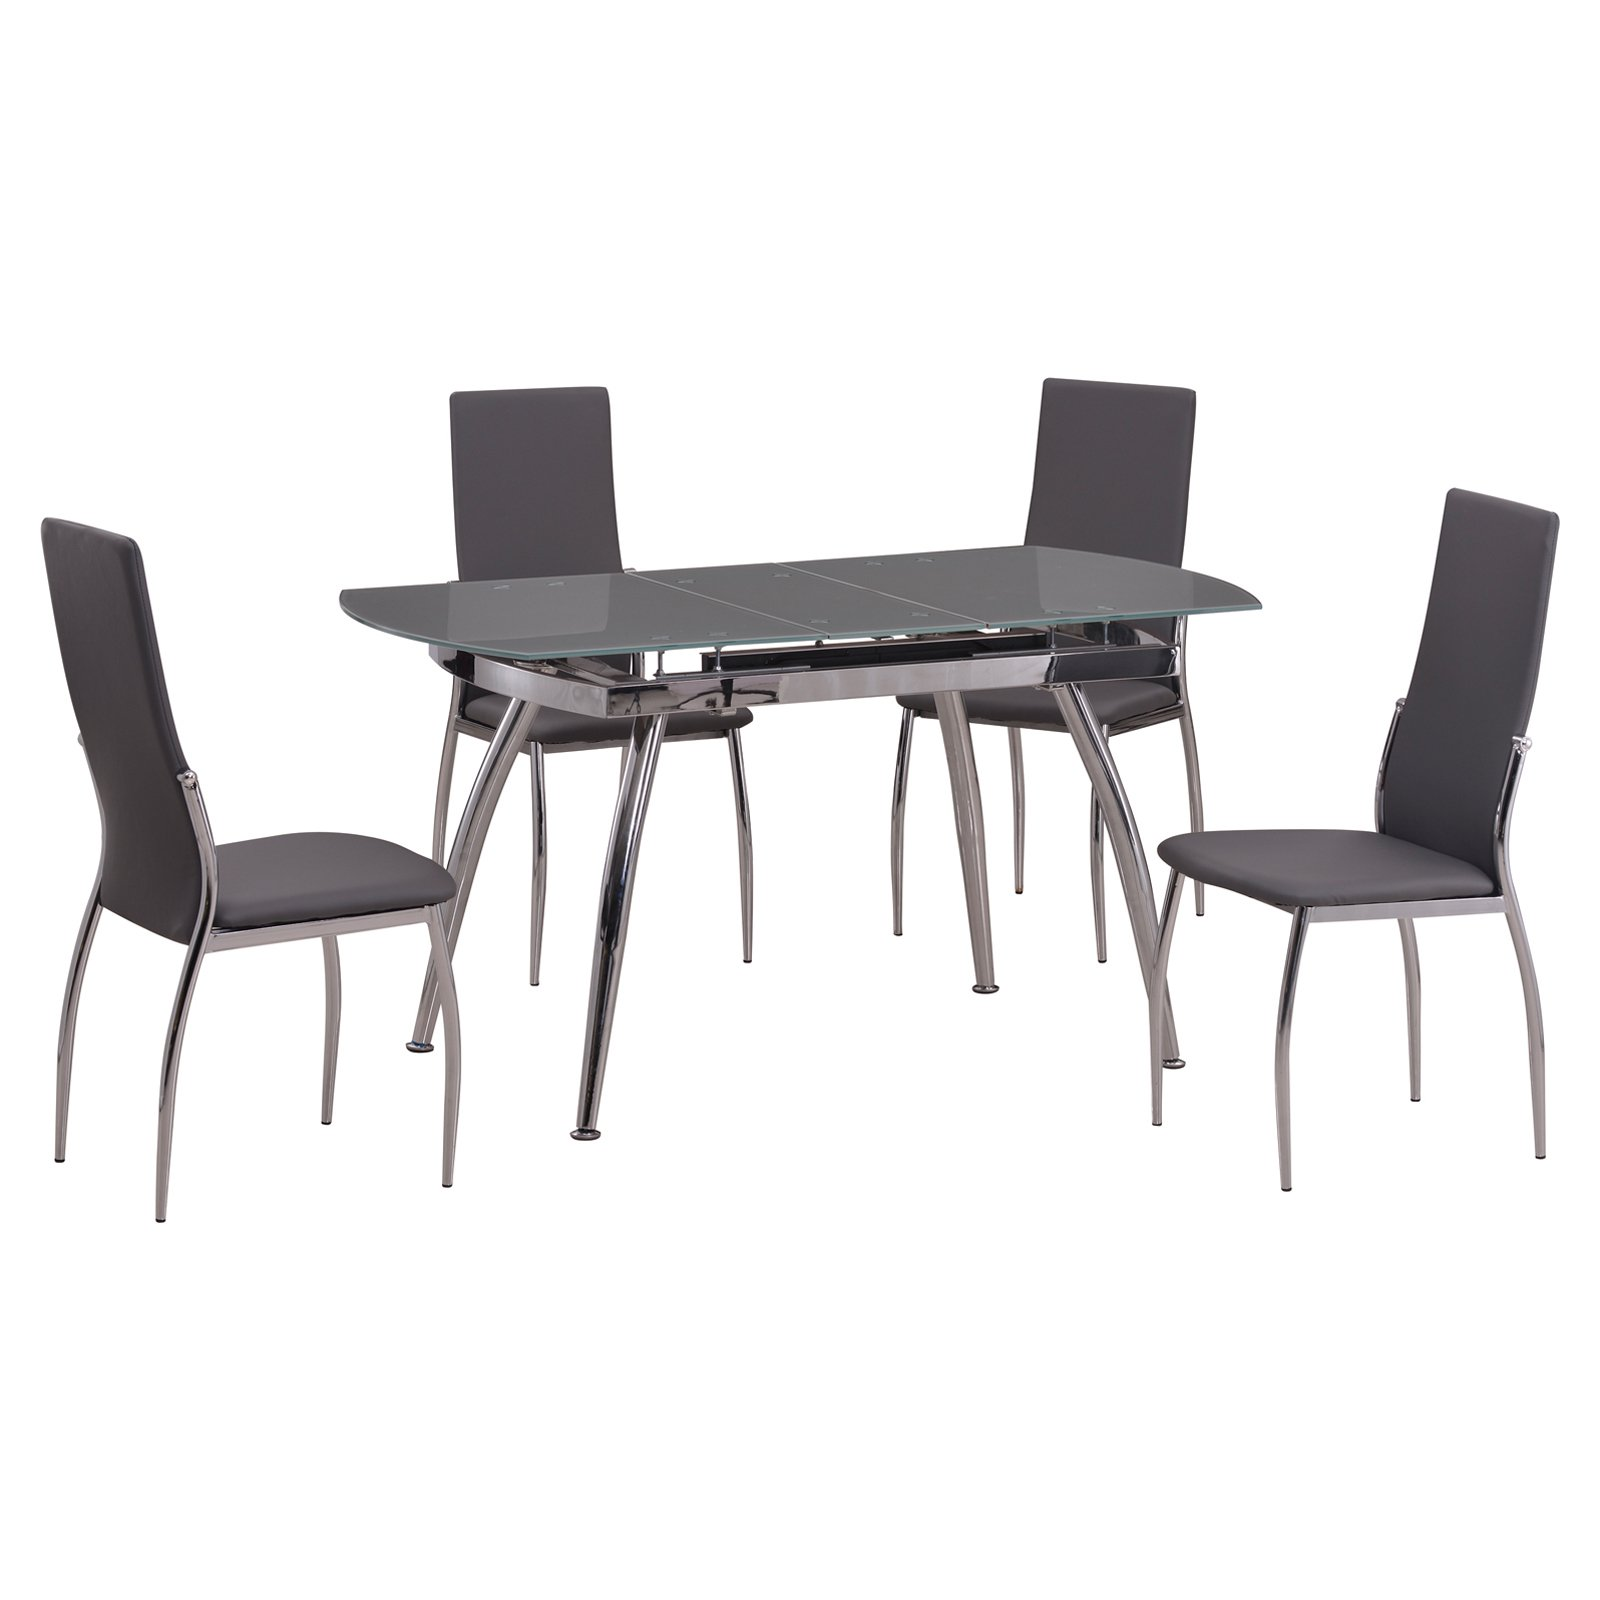 Chintaly Luna 5-Piece Dining Table Set